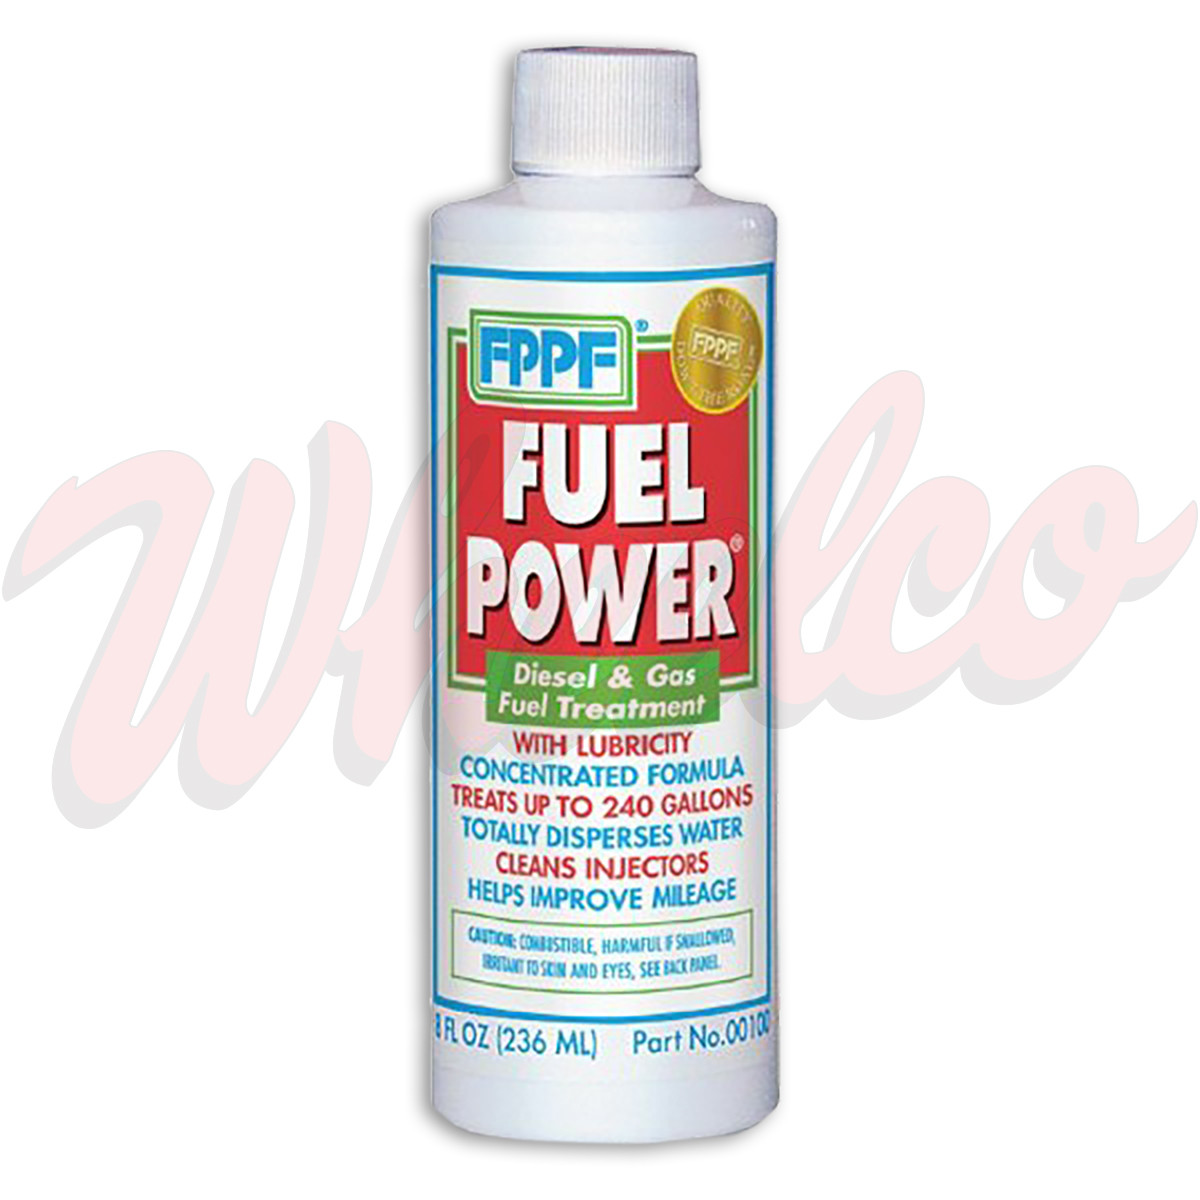 00100_FPPF-Chemical-Co-Inc.Chemicals-Oils-and-Lubricants.Fuel.Additives.1